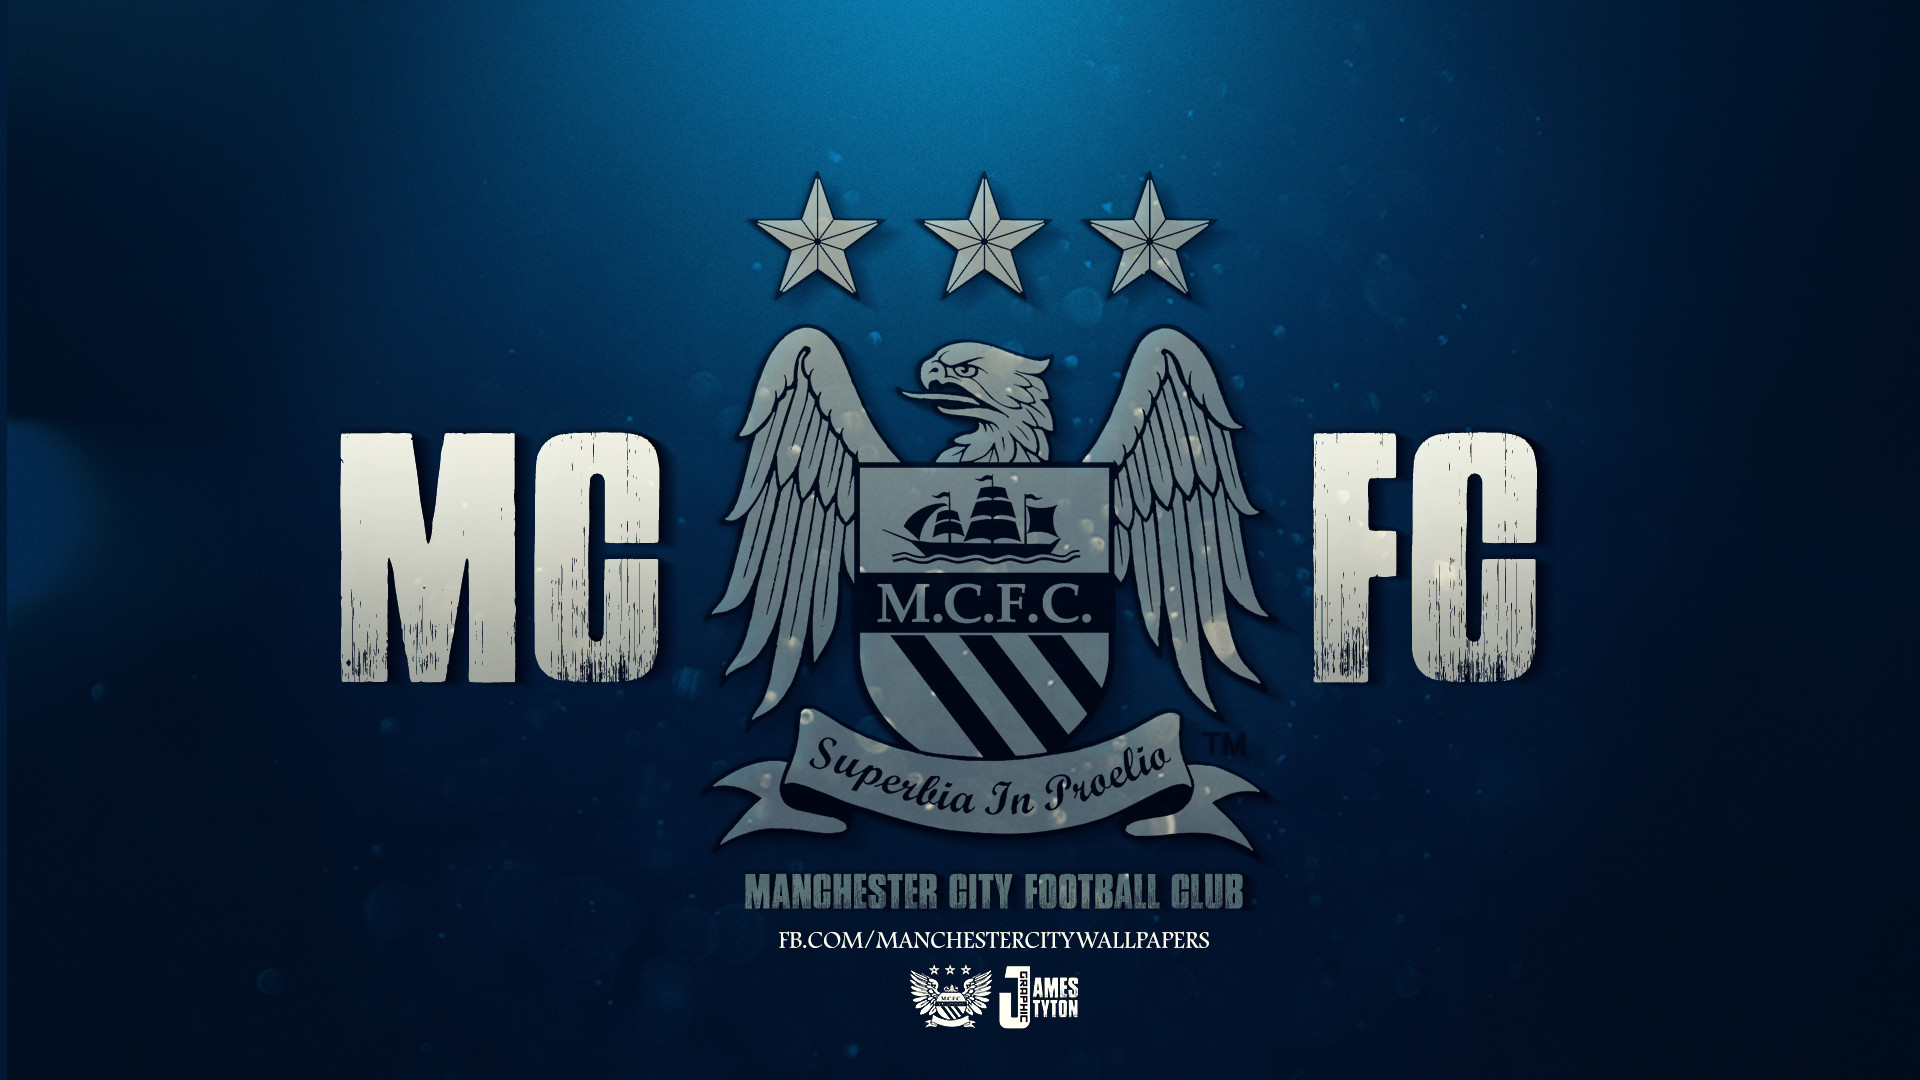 1920x1080 Manchester city wallpaper